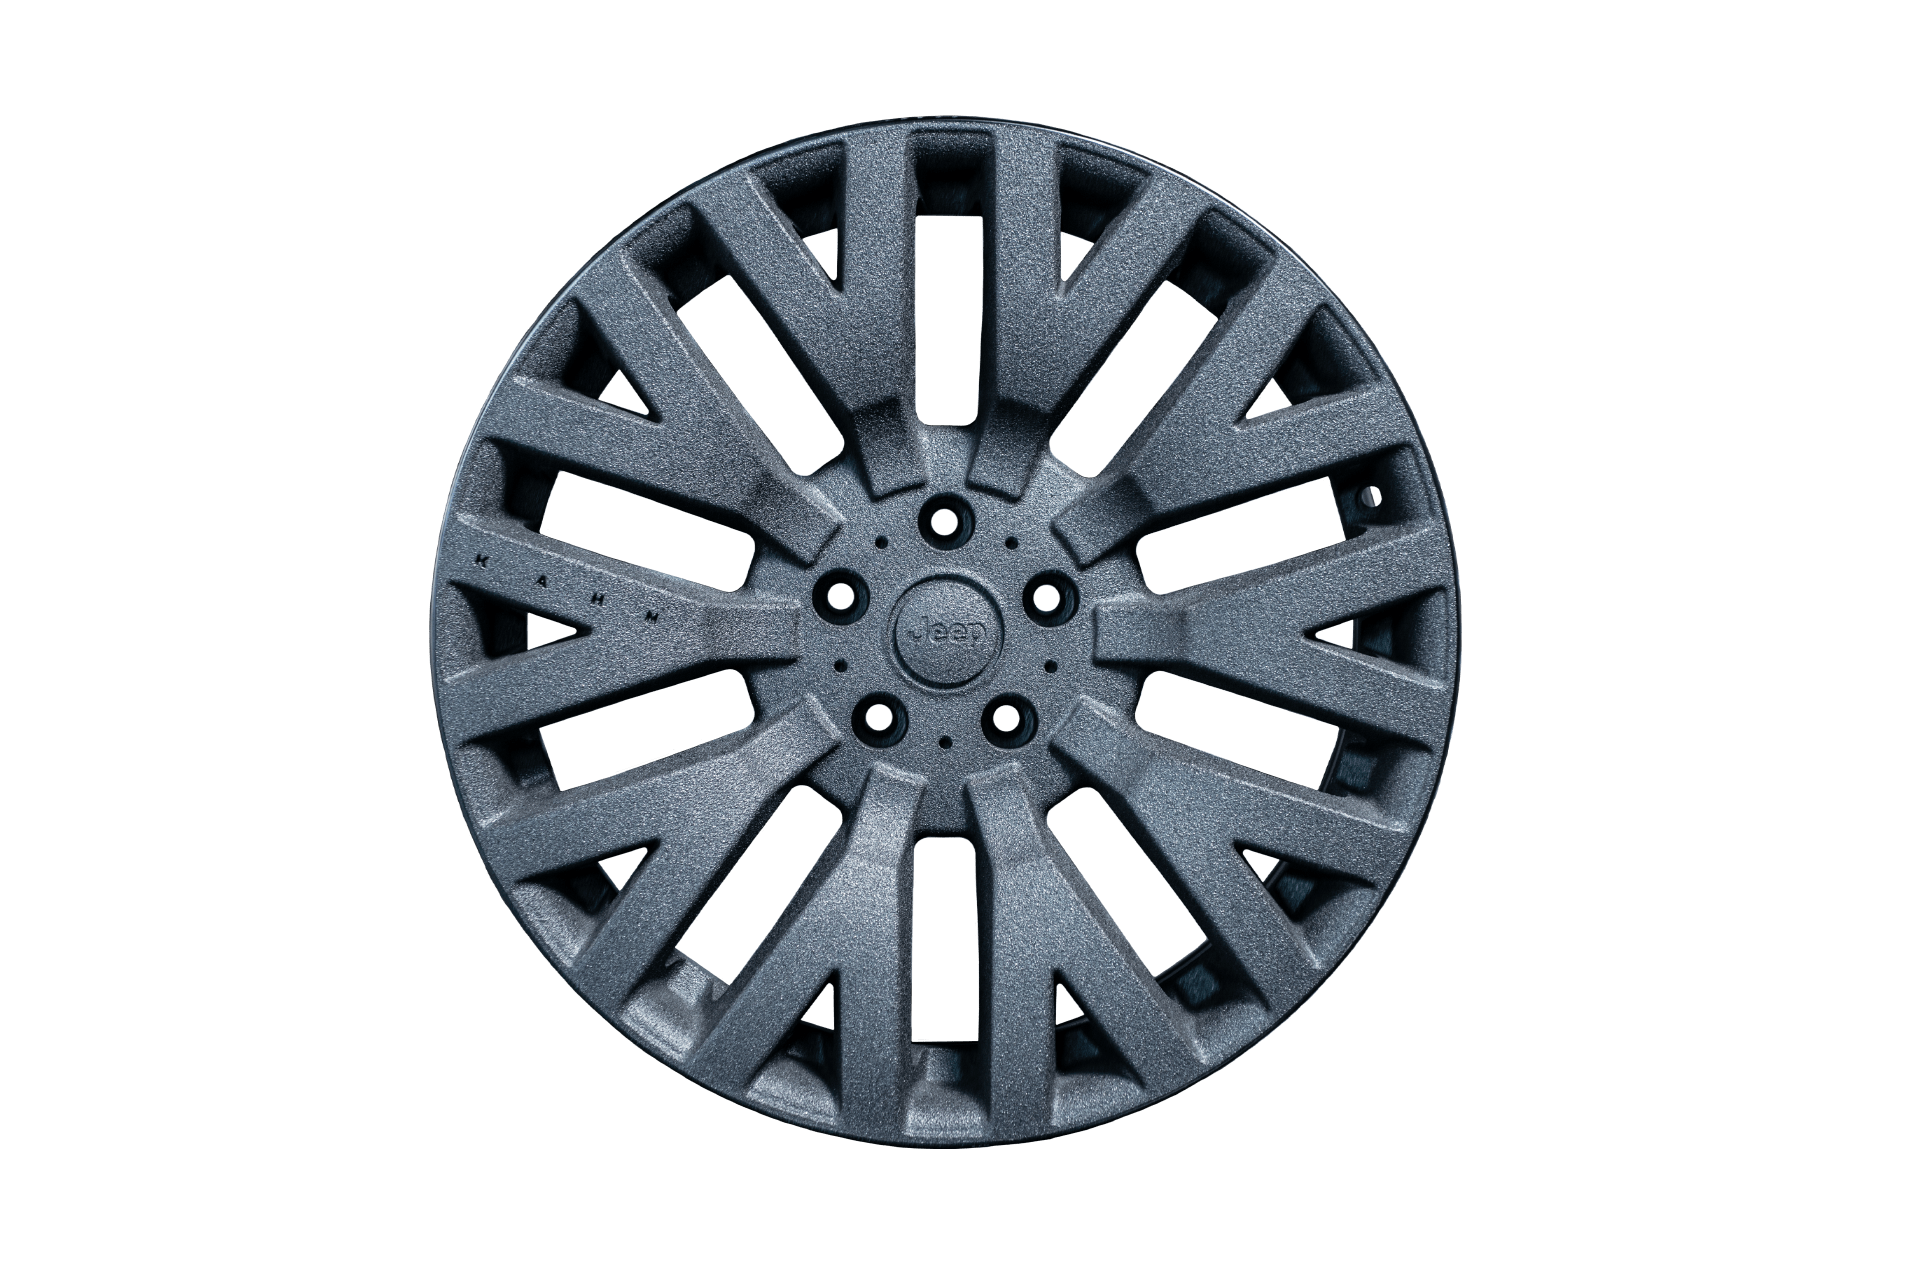 Jeep Wrangler JK (2007-2018) 3D TEXTURE PAINTED 1986 Light Alloy Wheels